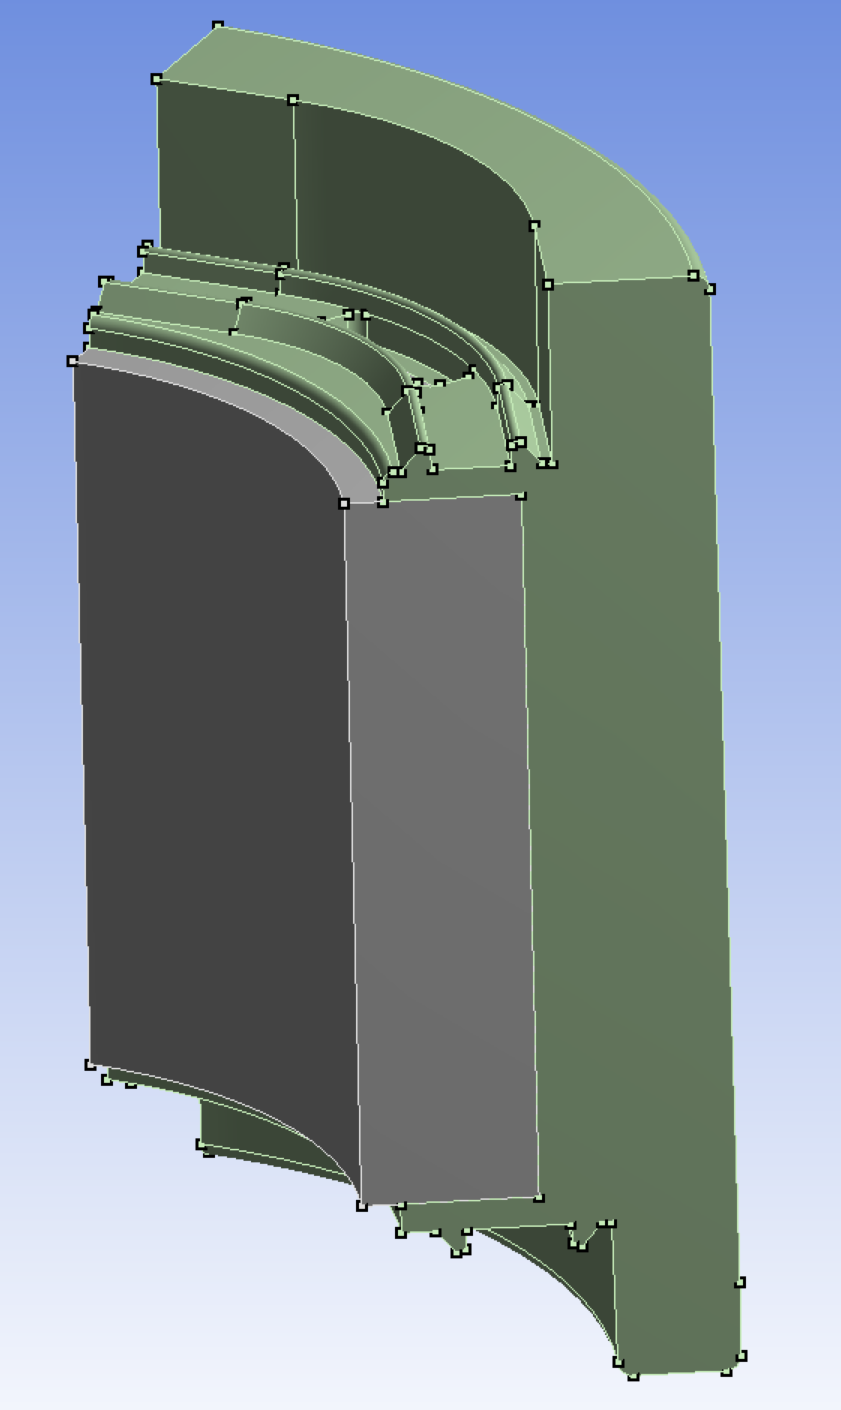 Full model, magnet is between electrometal plate (gray) and polymer part (green).